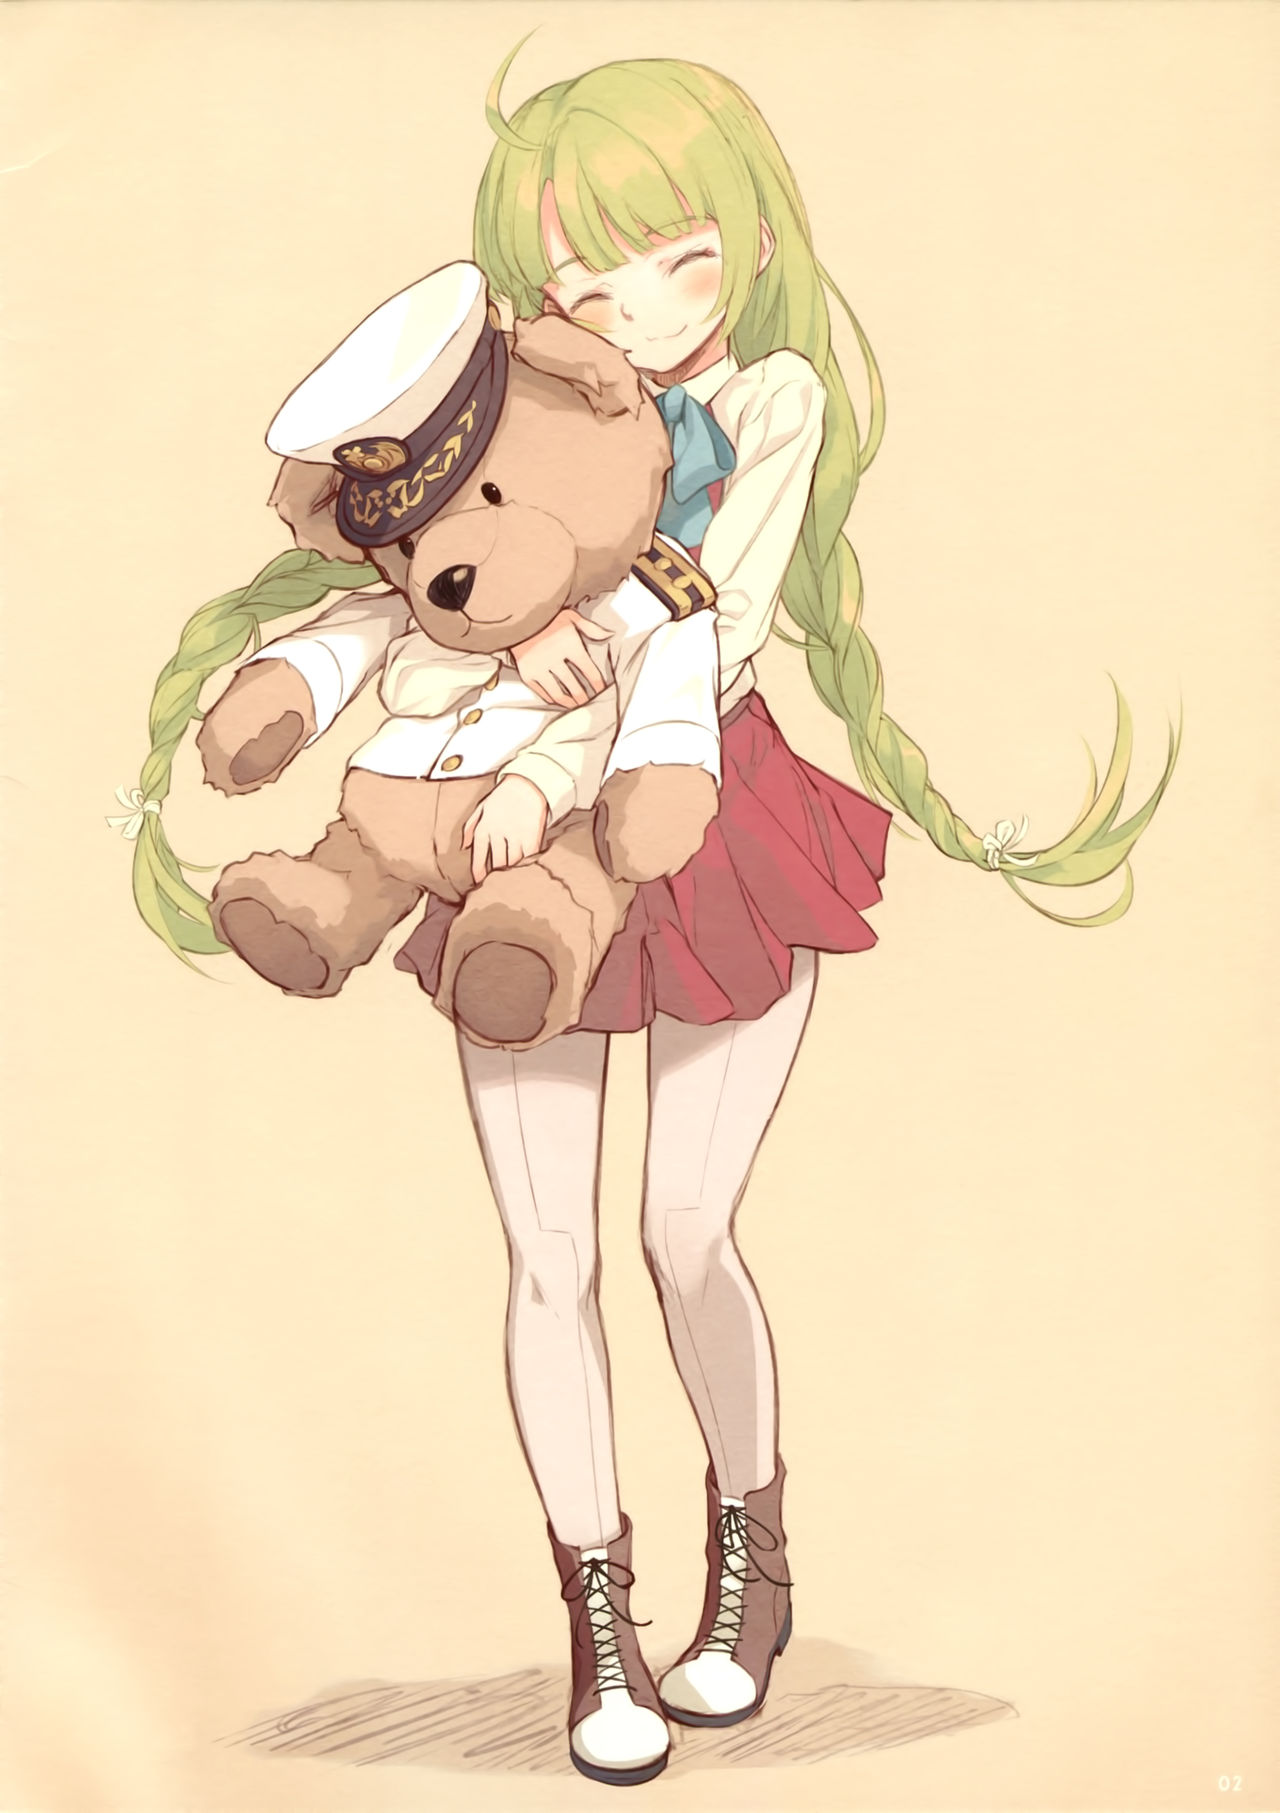 1girl blouse blush boots bow bowtie braid closed_eyes closed_mouth cross-laced_footwear dress epaulettes eyebrows_visible_through_hair full_body green_hair grey_legwear hat highres kantai_collection lace-up_boots long_hair long_sleeves military military_uniform naval_uniform pantyhose peaked_cap pleated_skirt purple_skirt scan school_uniform shirt single_braid skirt smile supertie toy uniform very_long_hair white_blouse white_shirt yuugumo_(kantai_collection)